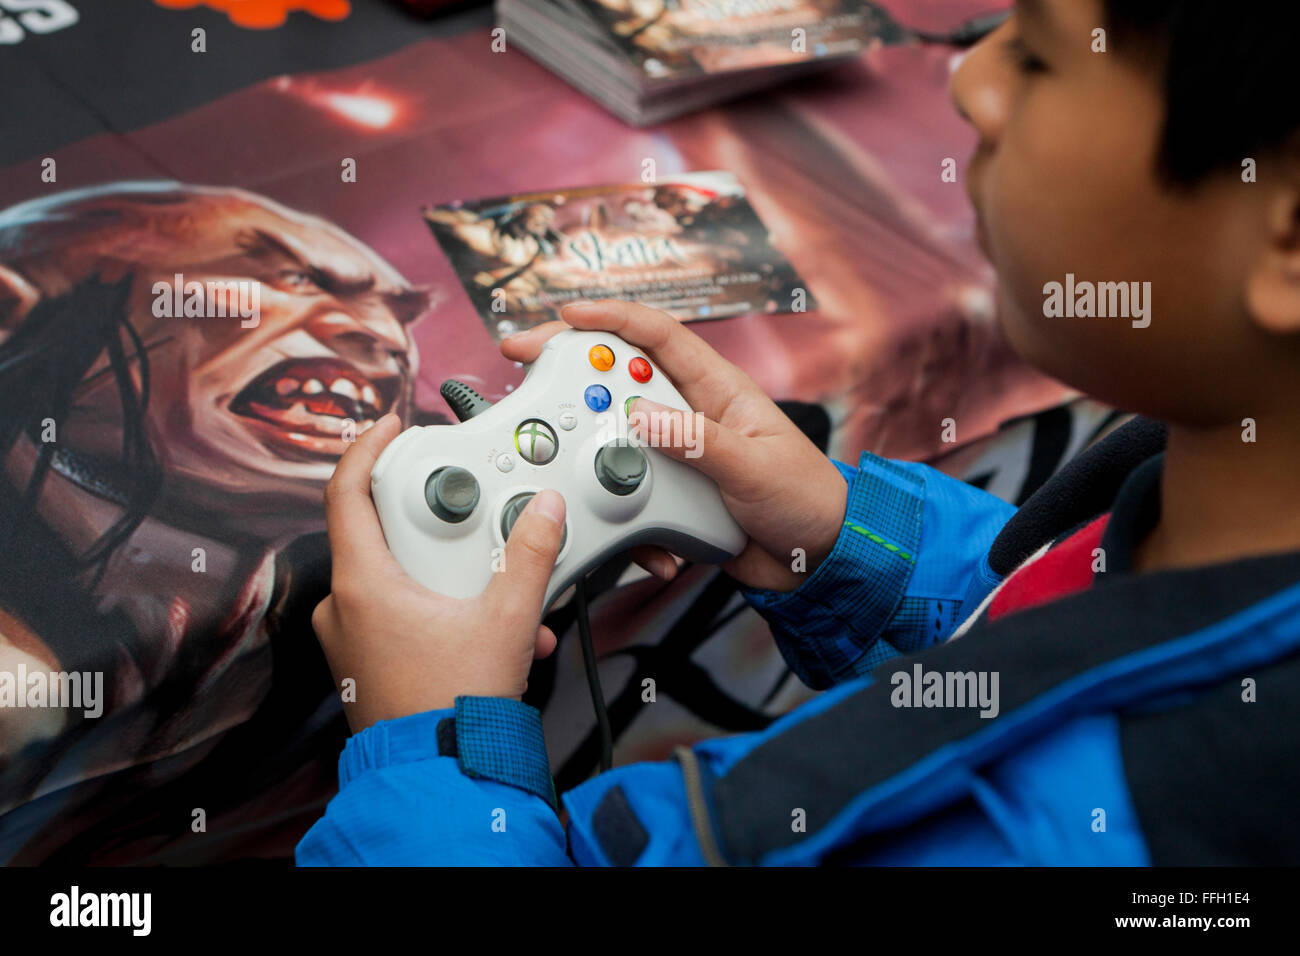 Child holding an Xbox 360 game controller unit - USA - Stock Image